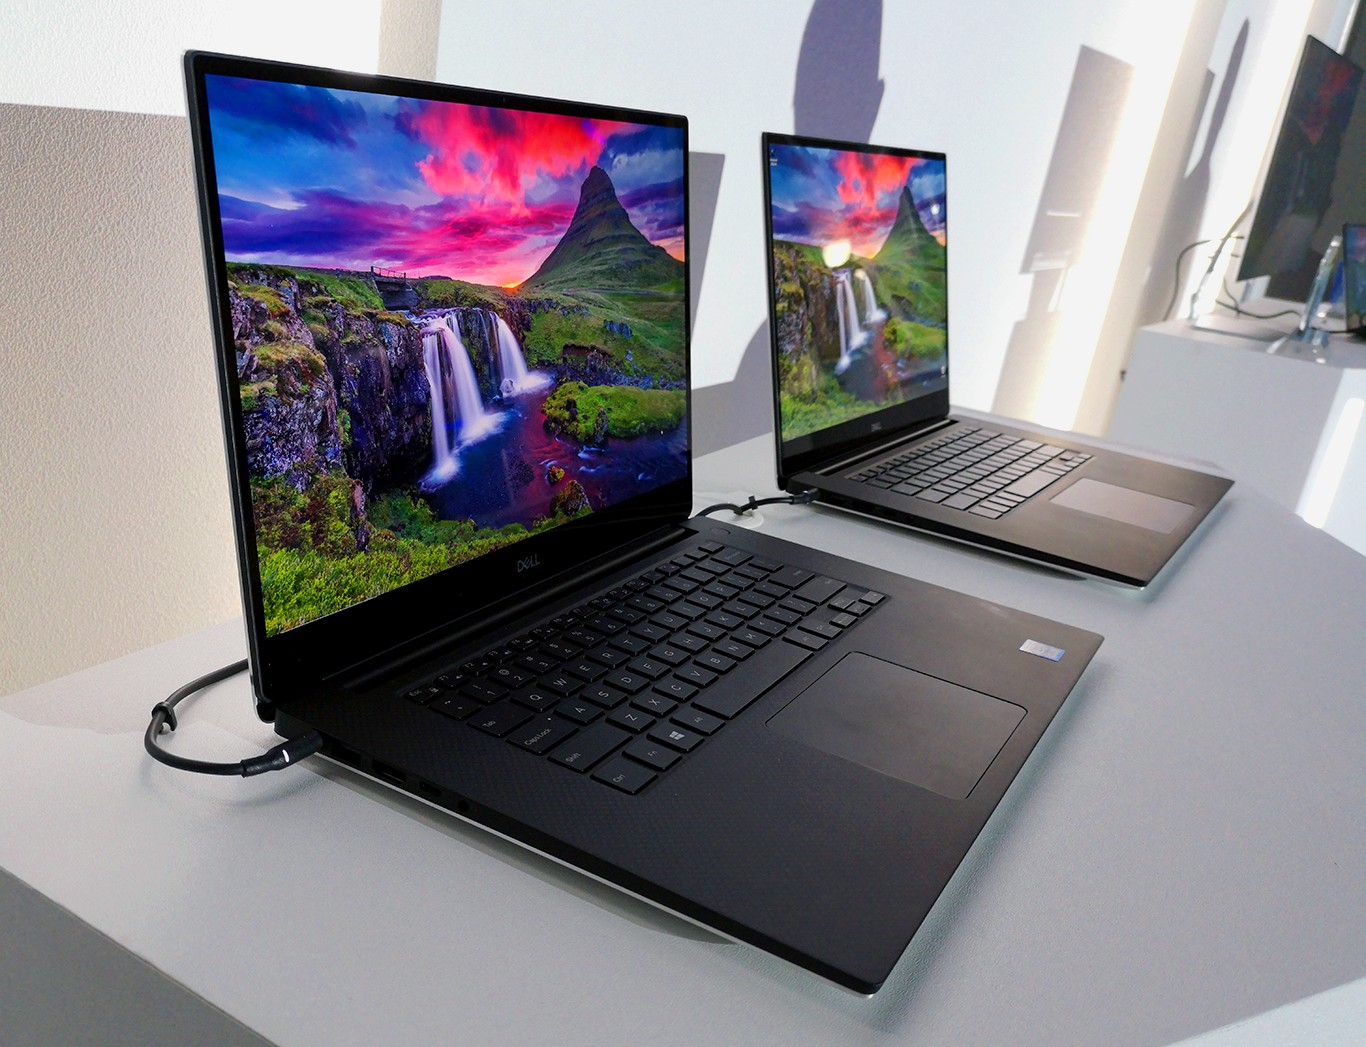 Dell's New 2019 XPS Series Performance Laptops Pack More Punch